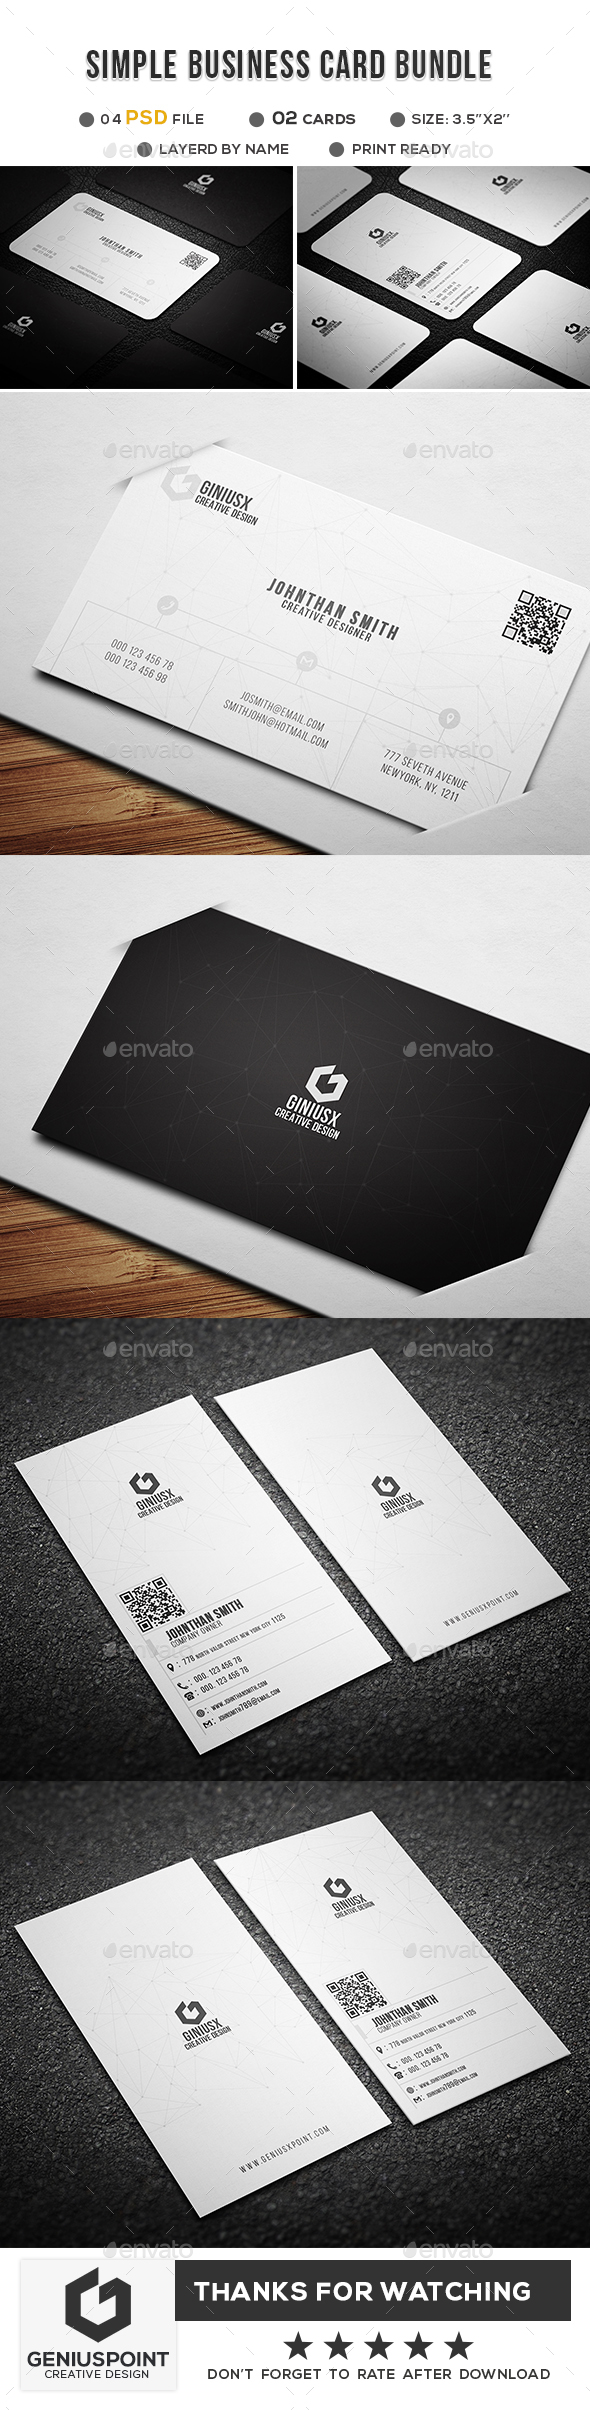 GraphicRiver Simple Business Card Bundle 20960473